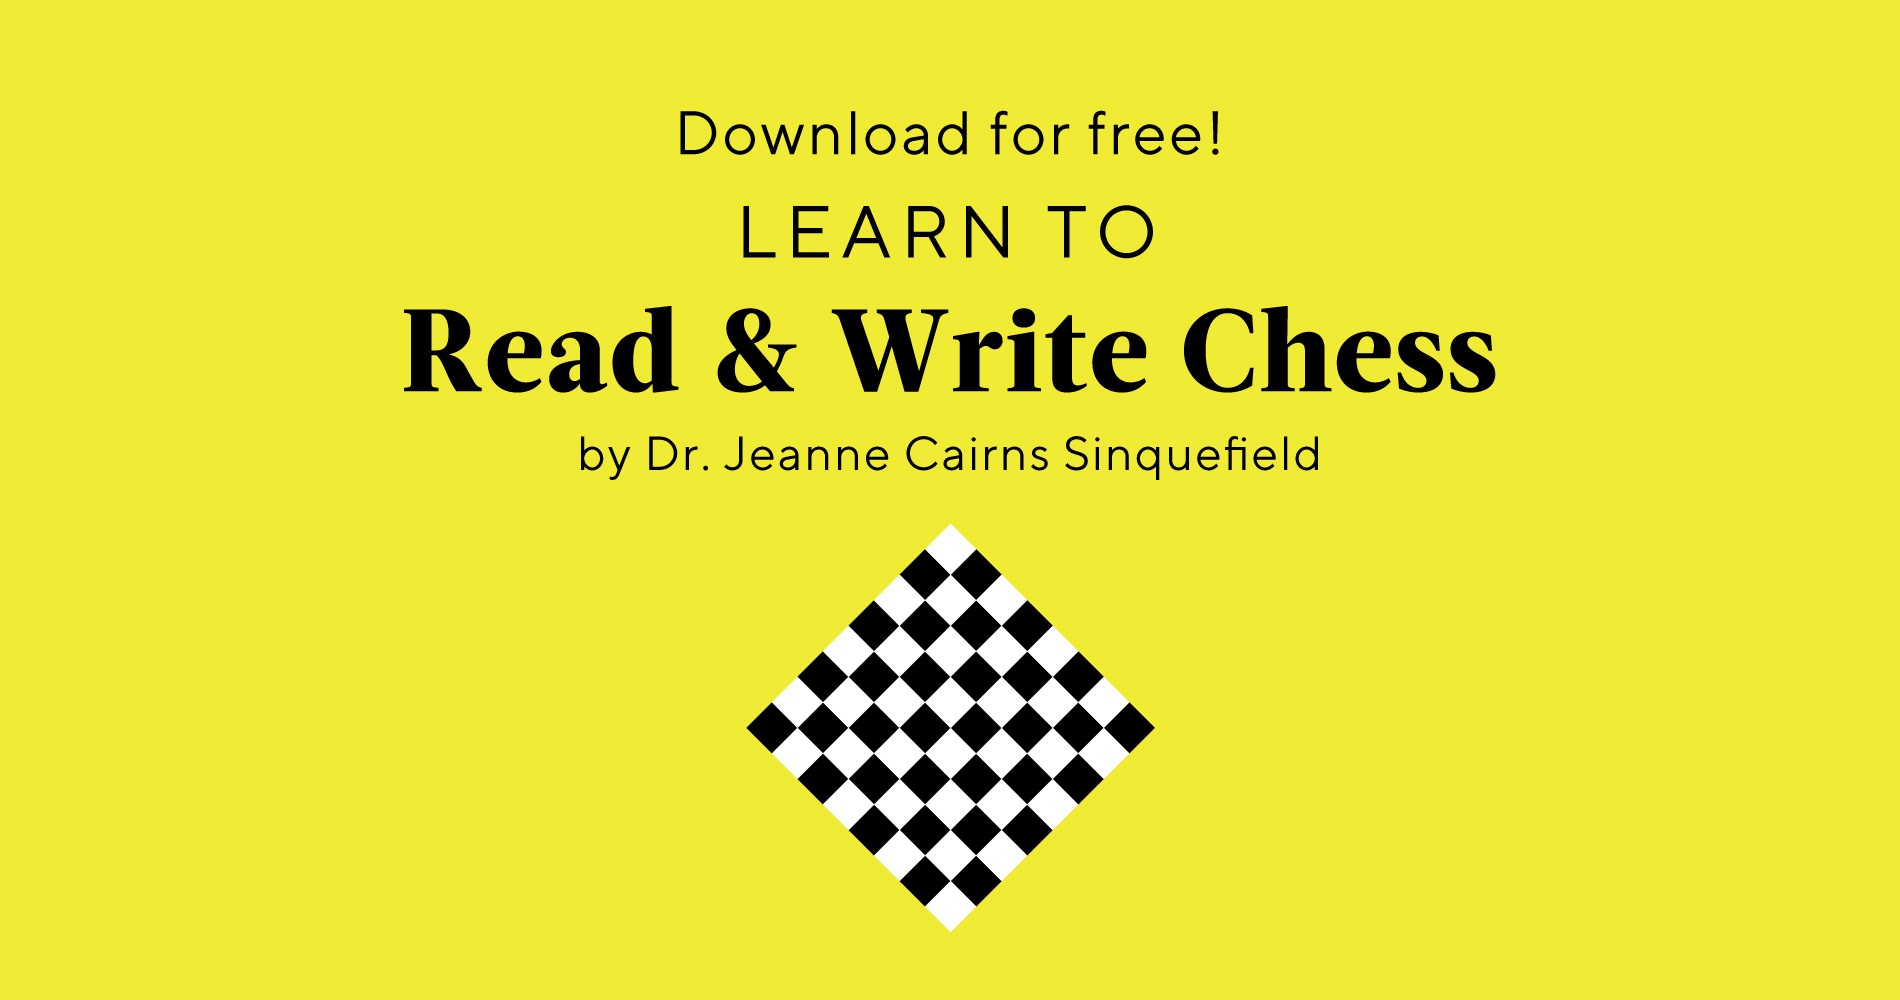 Learn to Read & Write Chess Download